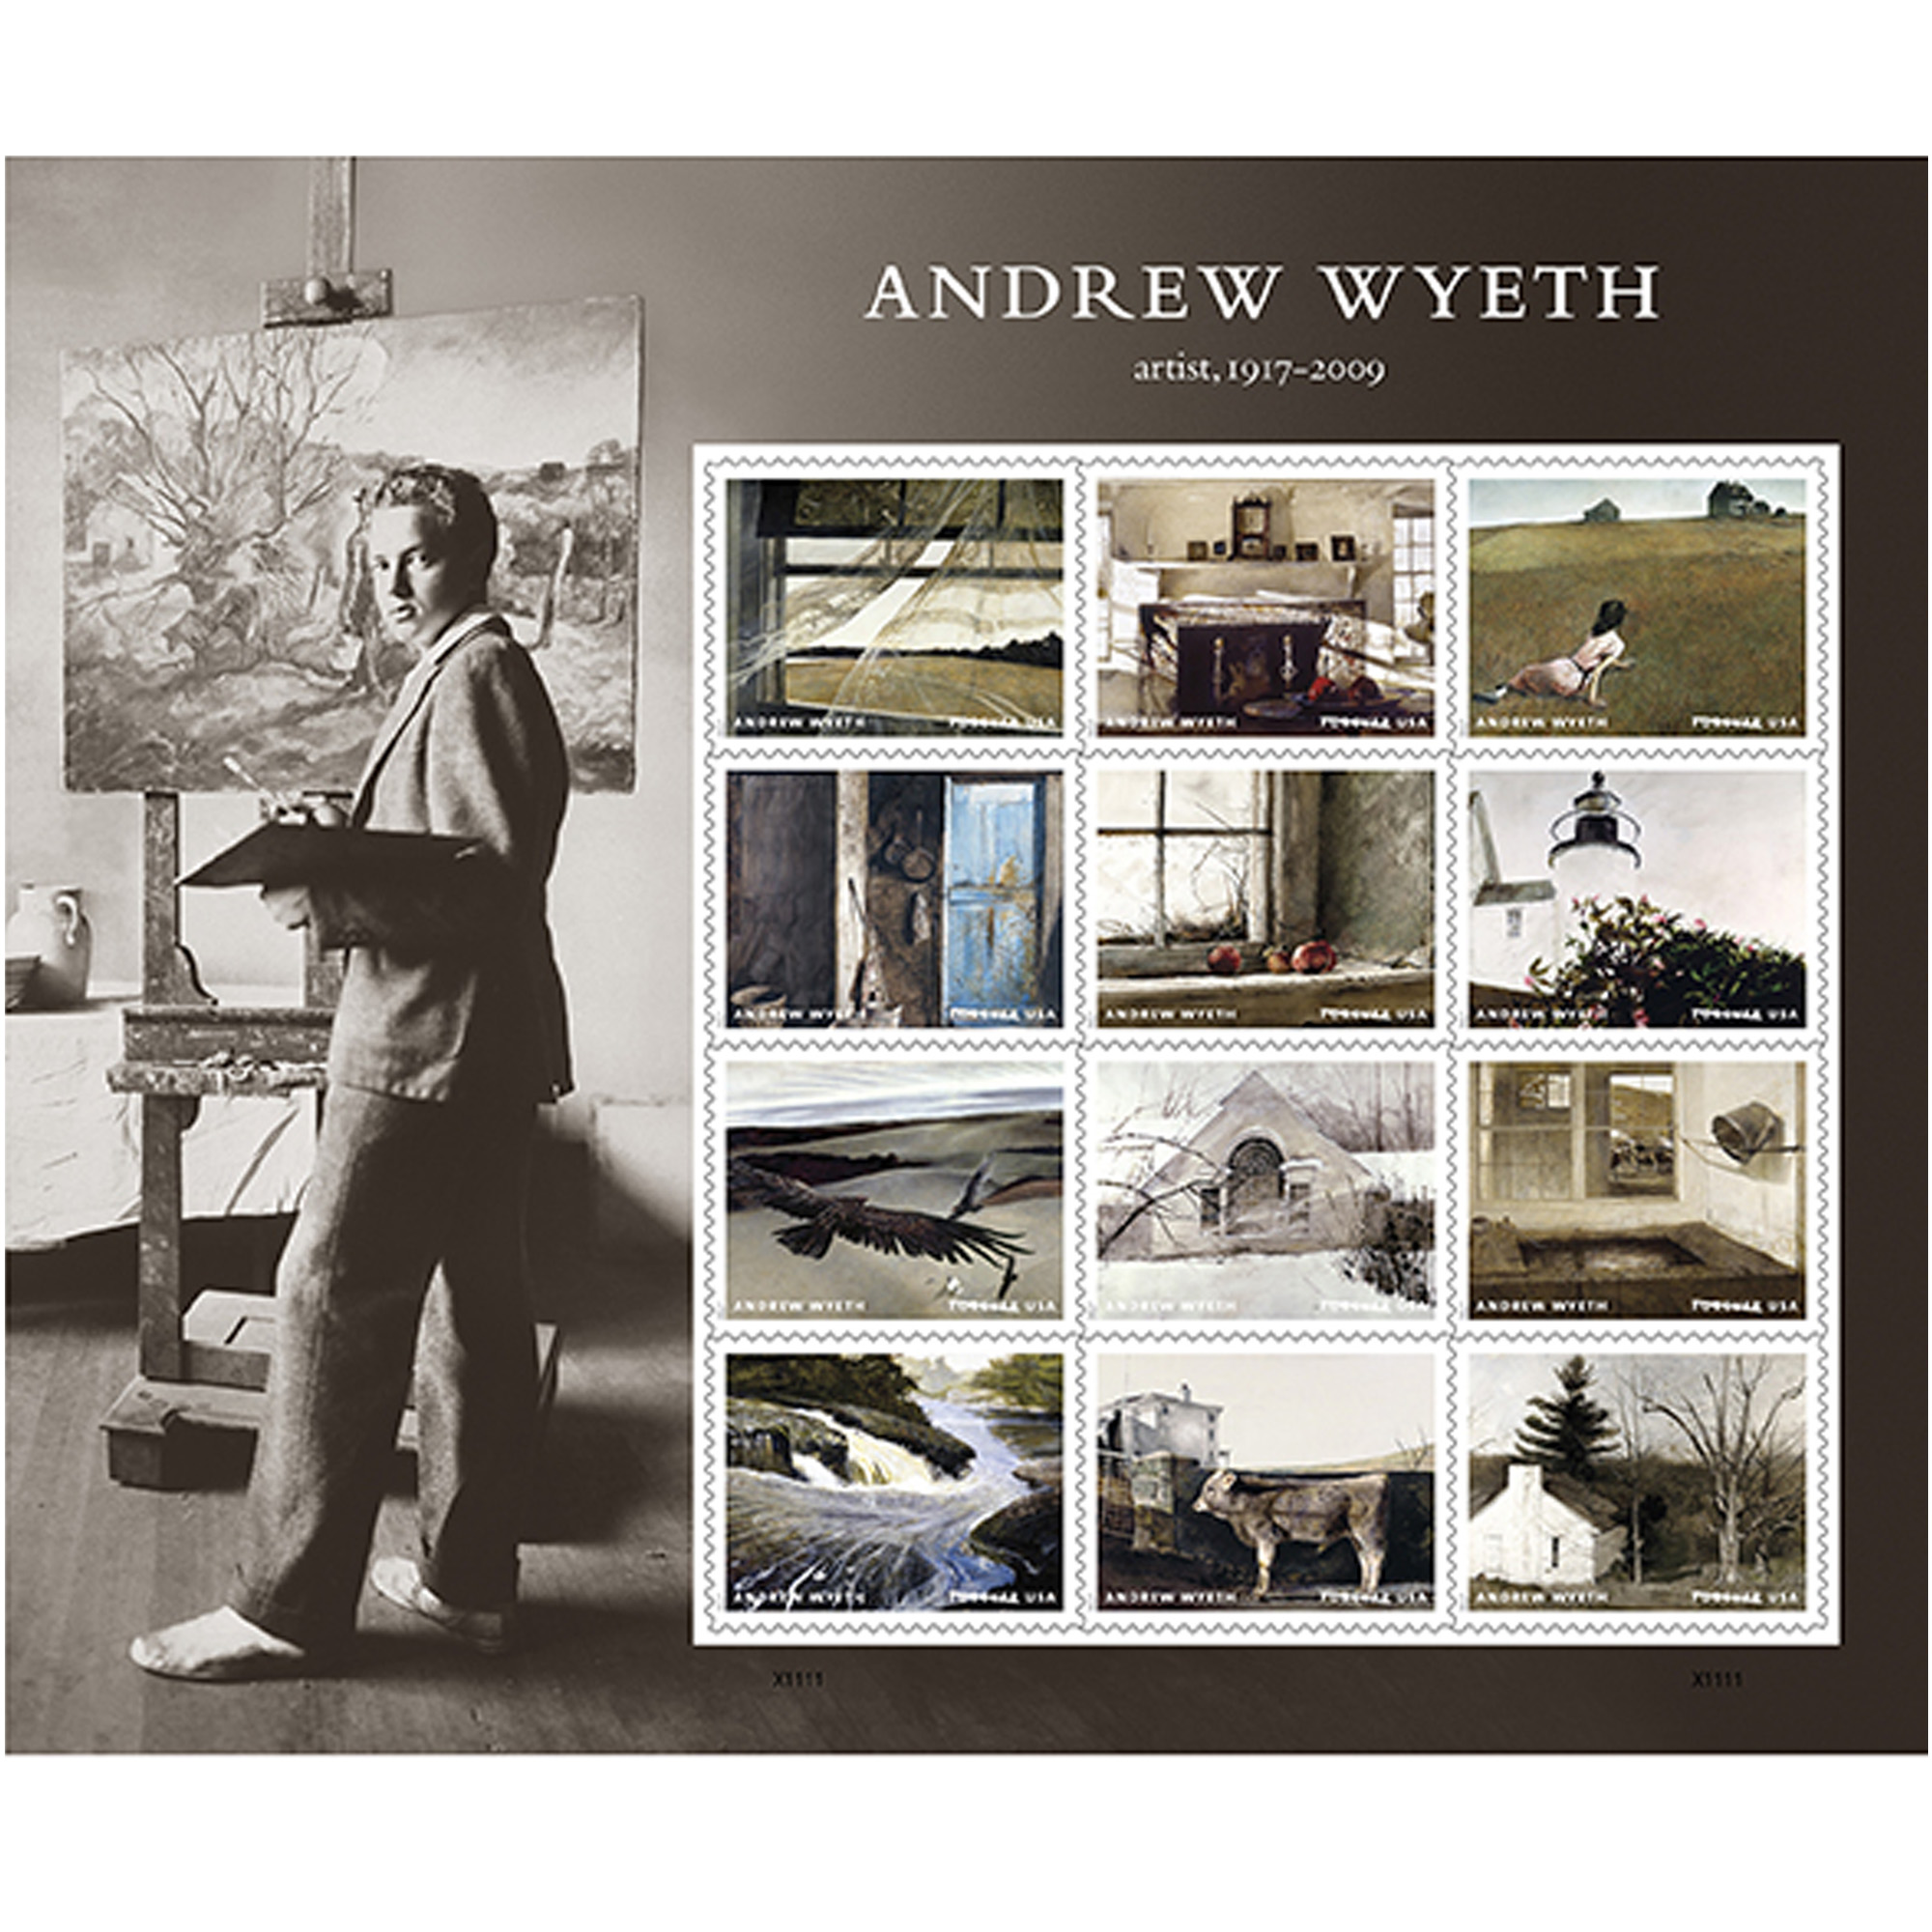 Andrew Wyeth SHeet of 12 Forever USPS First Class Postage Stamps American Artist Paintings by USPS